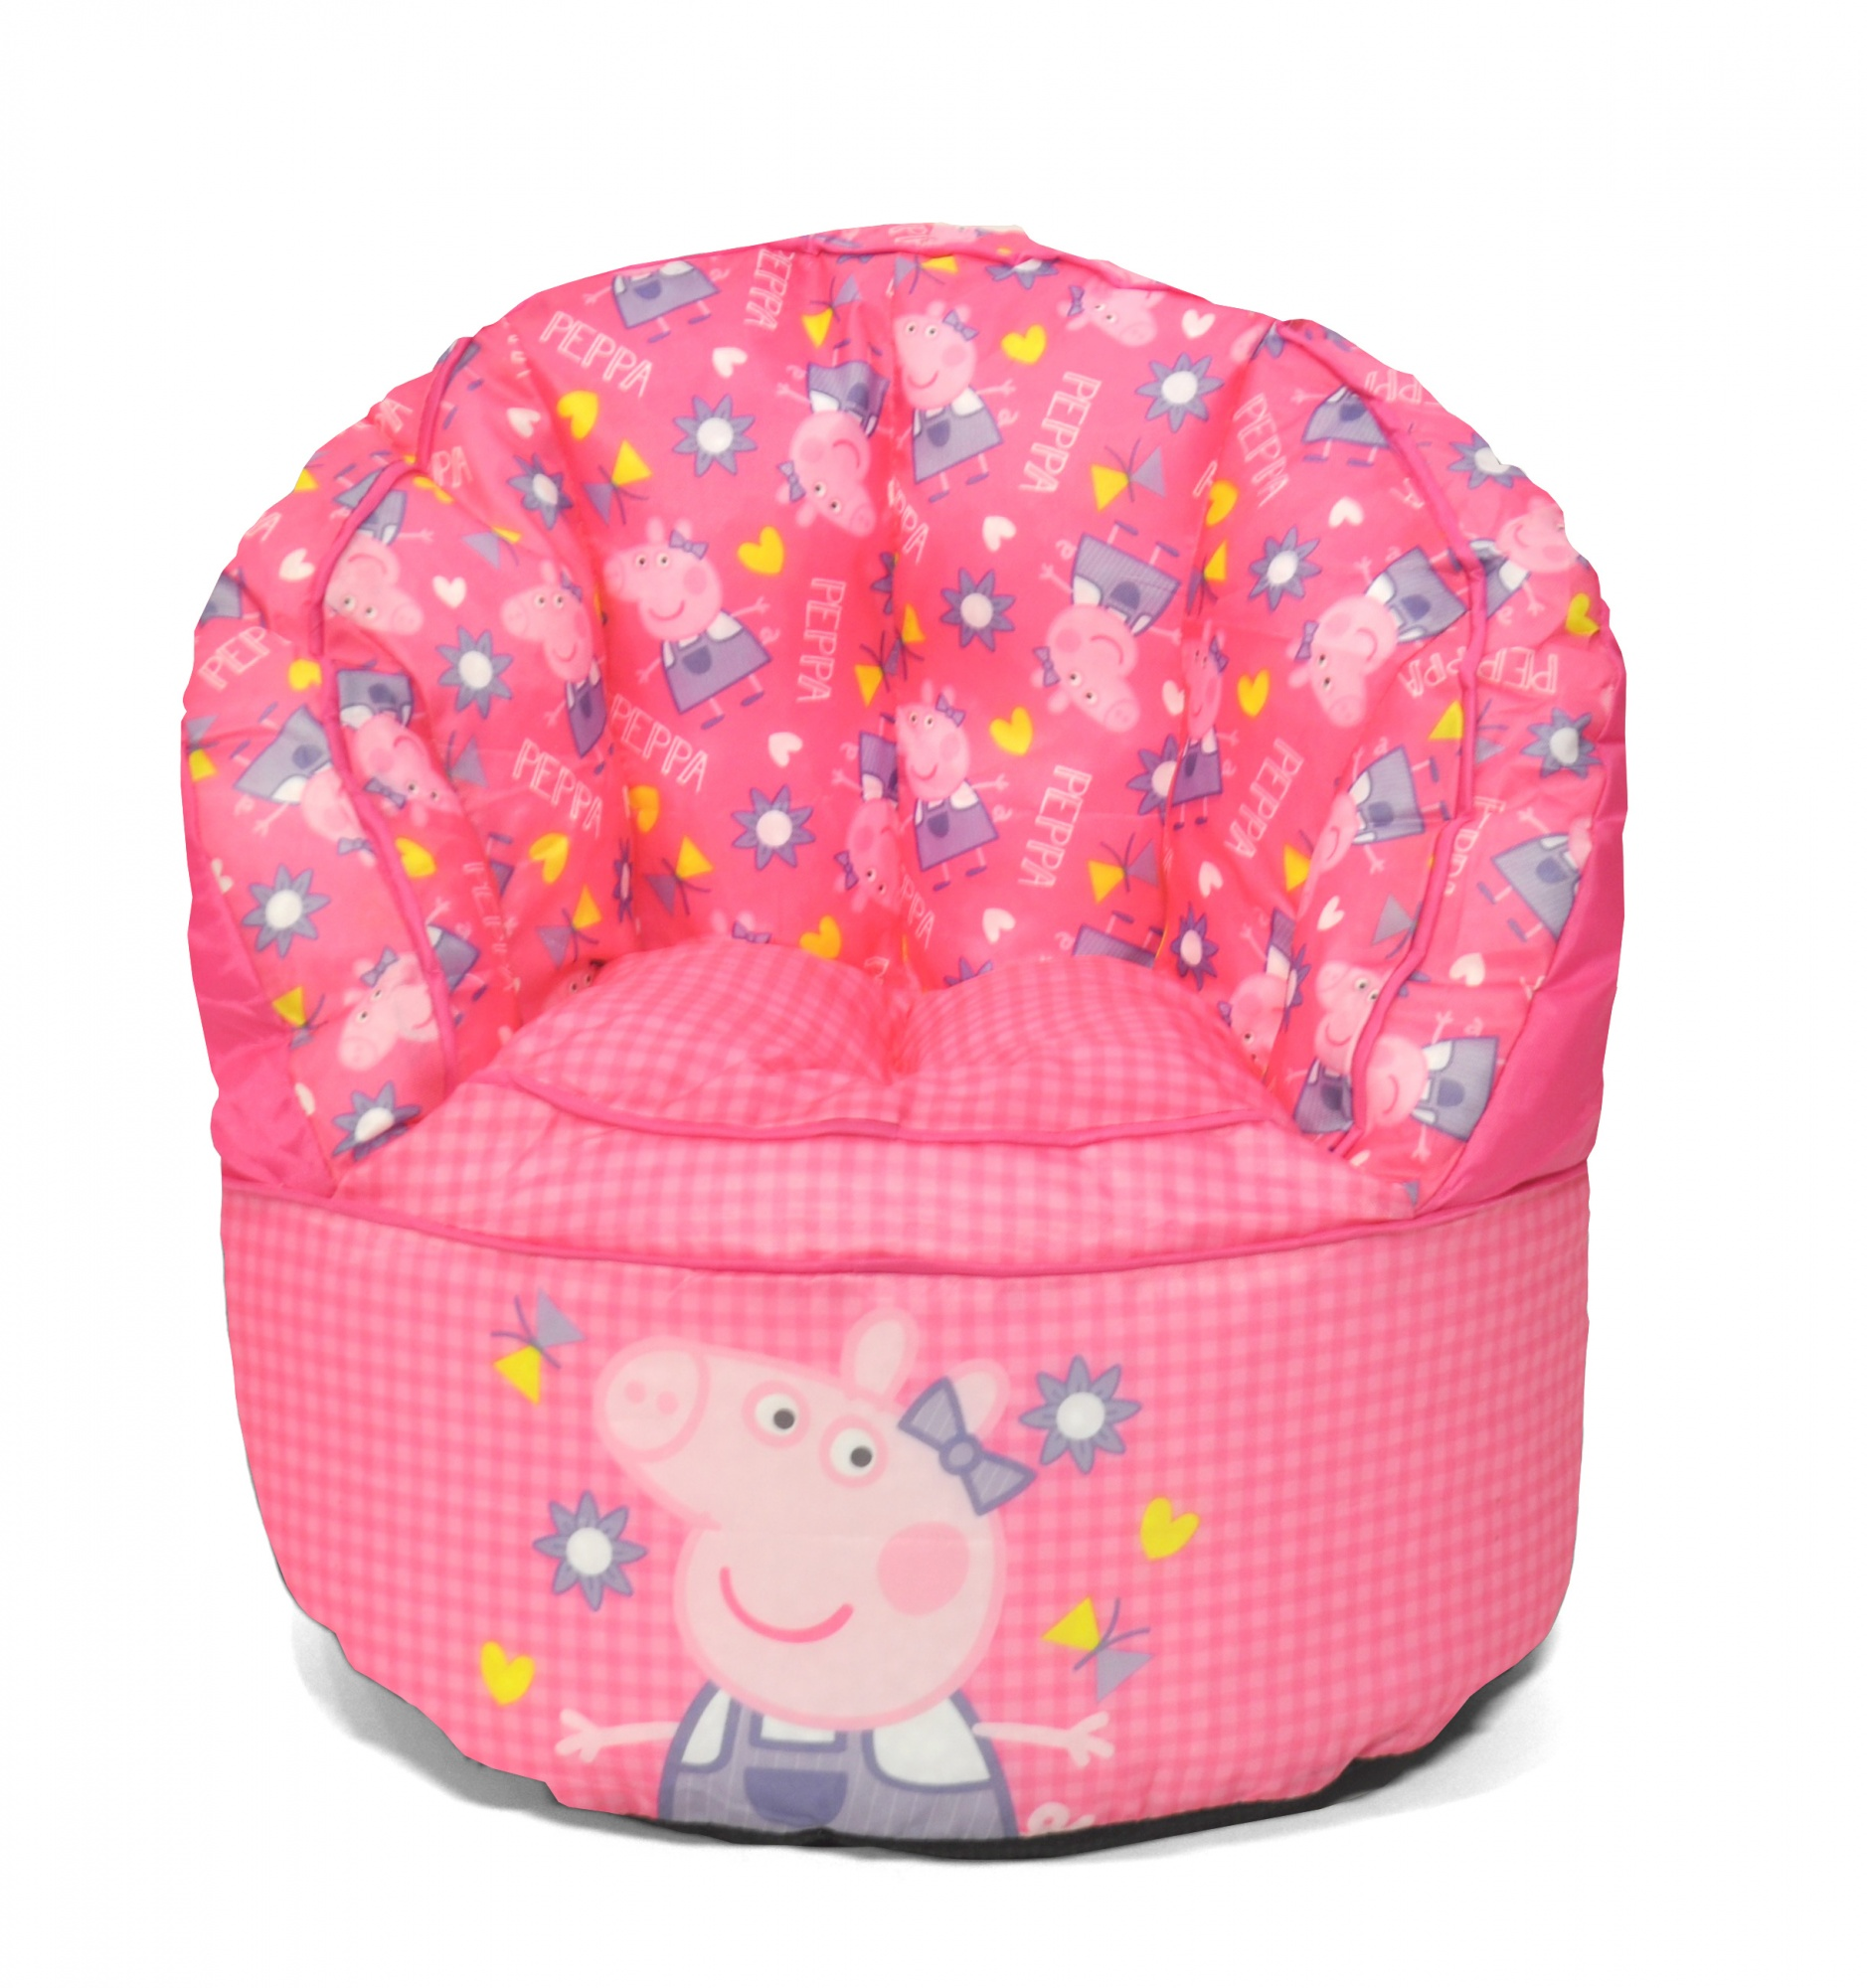 Tremendous Peppa Pig Kids Bean Bag Chair By Peppa Pig Shop Online For Ncnpc Chair Design For Home Ncnpcorg